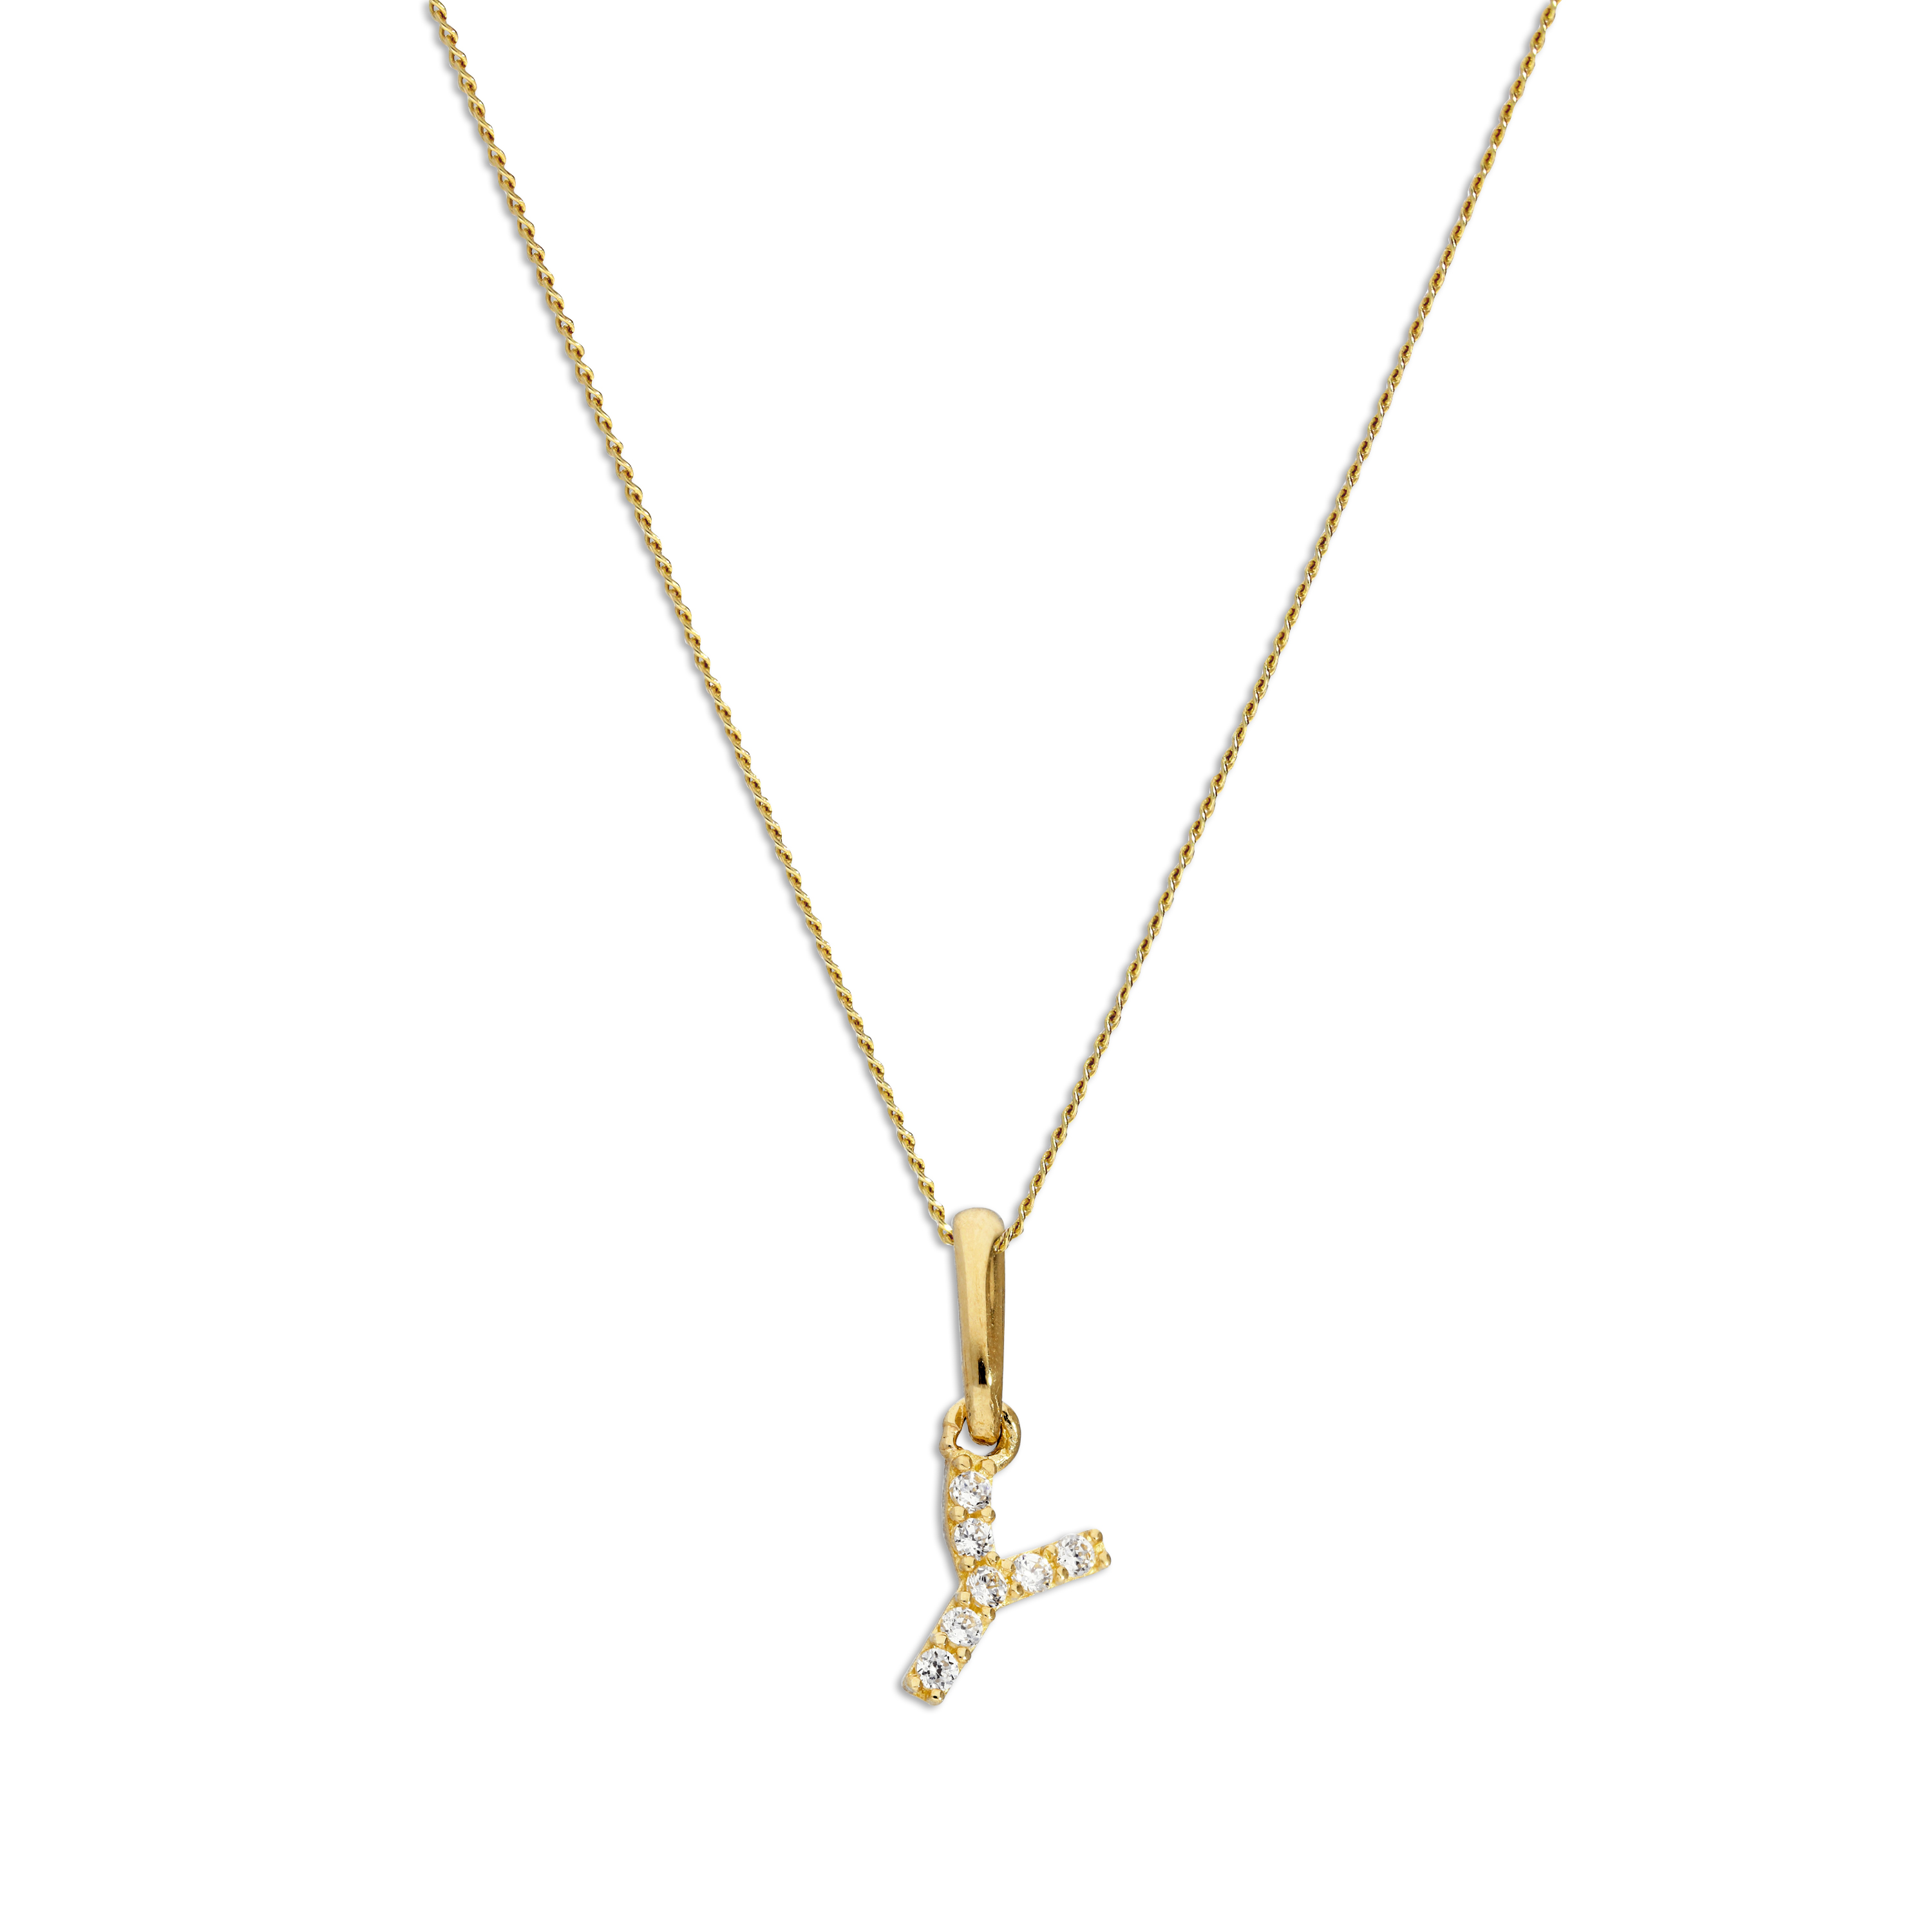 An image of 9ct Gold Clear CZ Crystal Script Alphabet Letter Y Necklace 16 Inches Chain